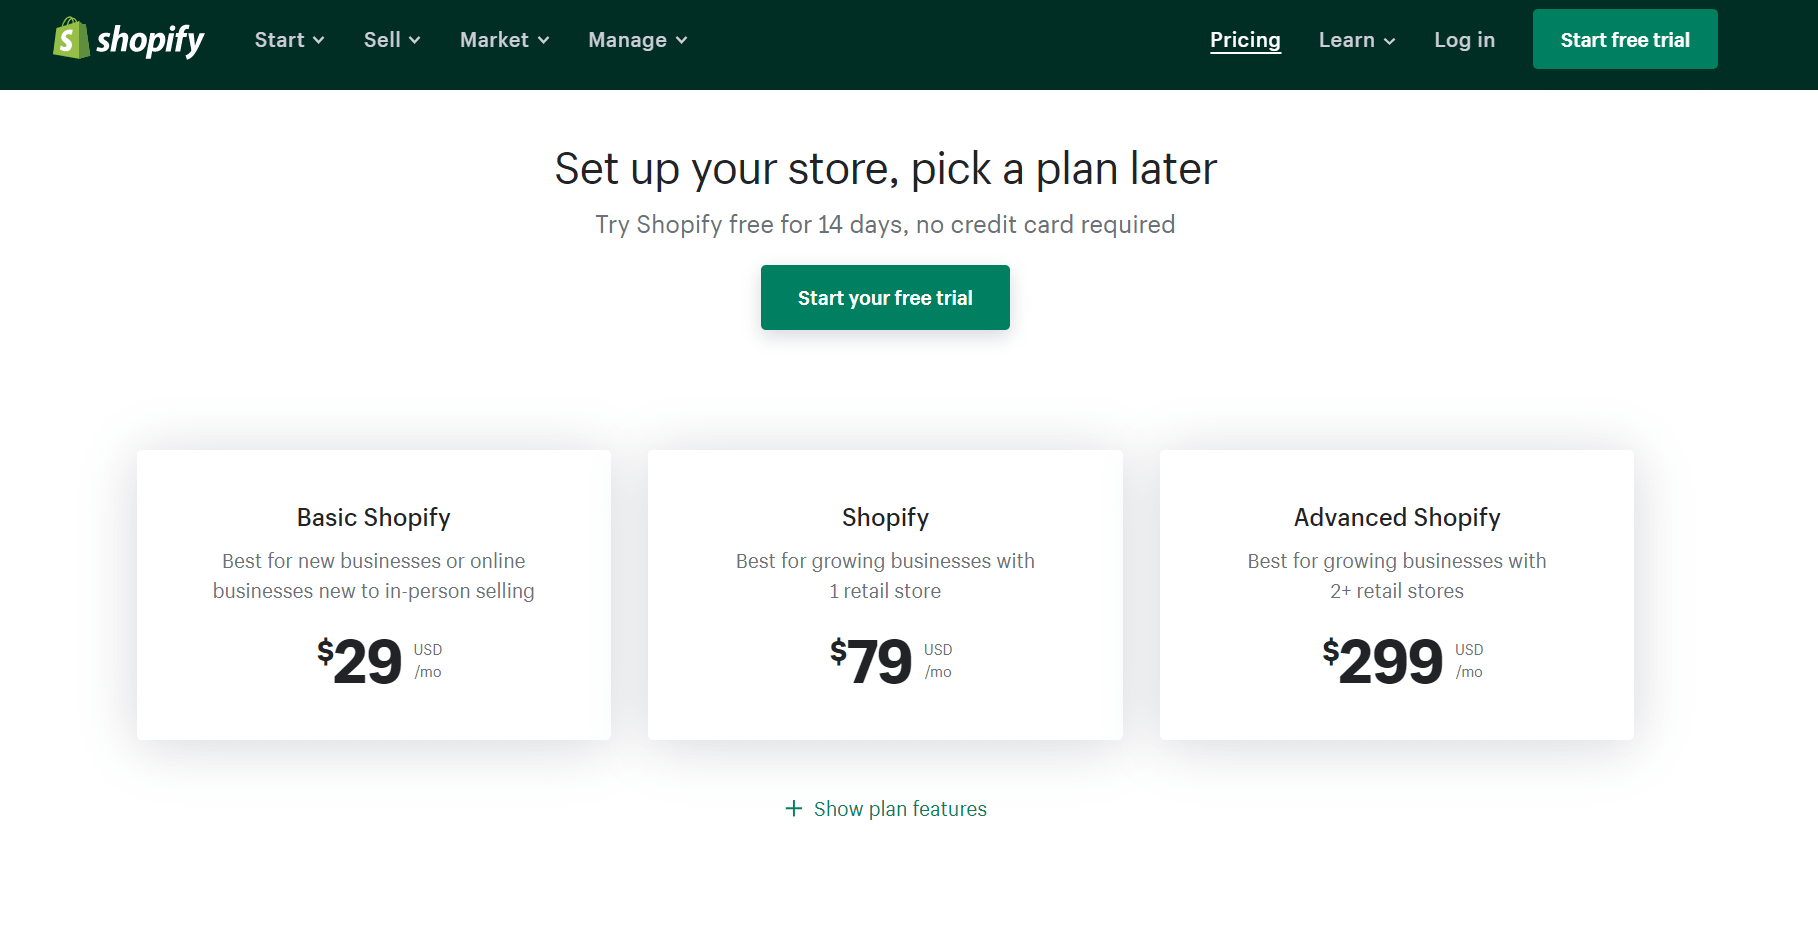 Squarespace pricing - Shopify pricing